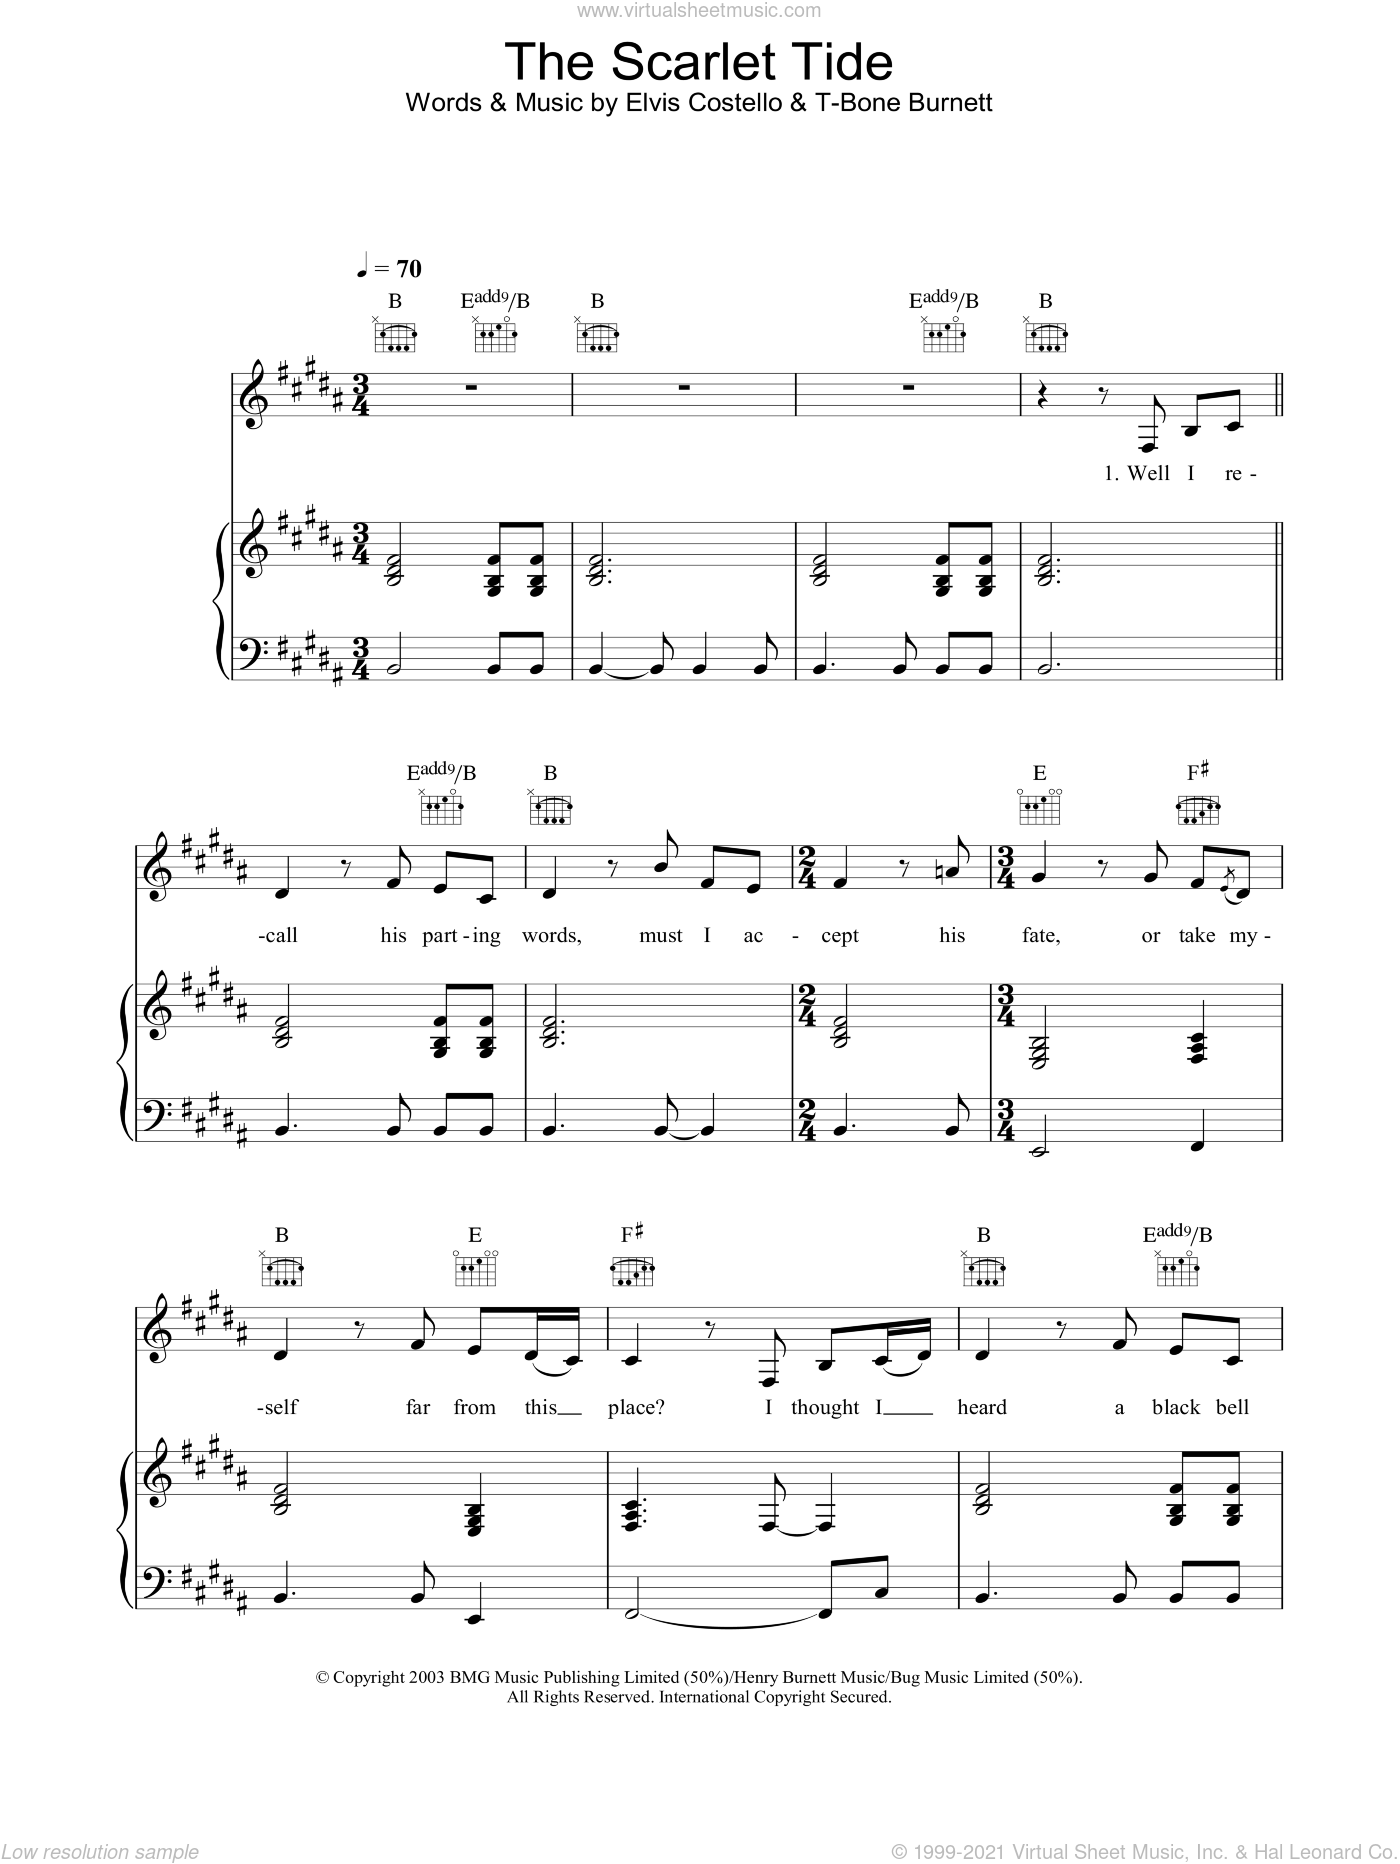 The Scarlet Tide sheet music for voice, piano or guitar by Alison Krauss, Elvis Costello and T-Bone Burnett, intermediate skill level